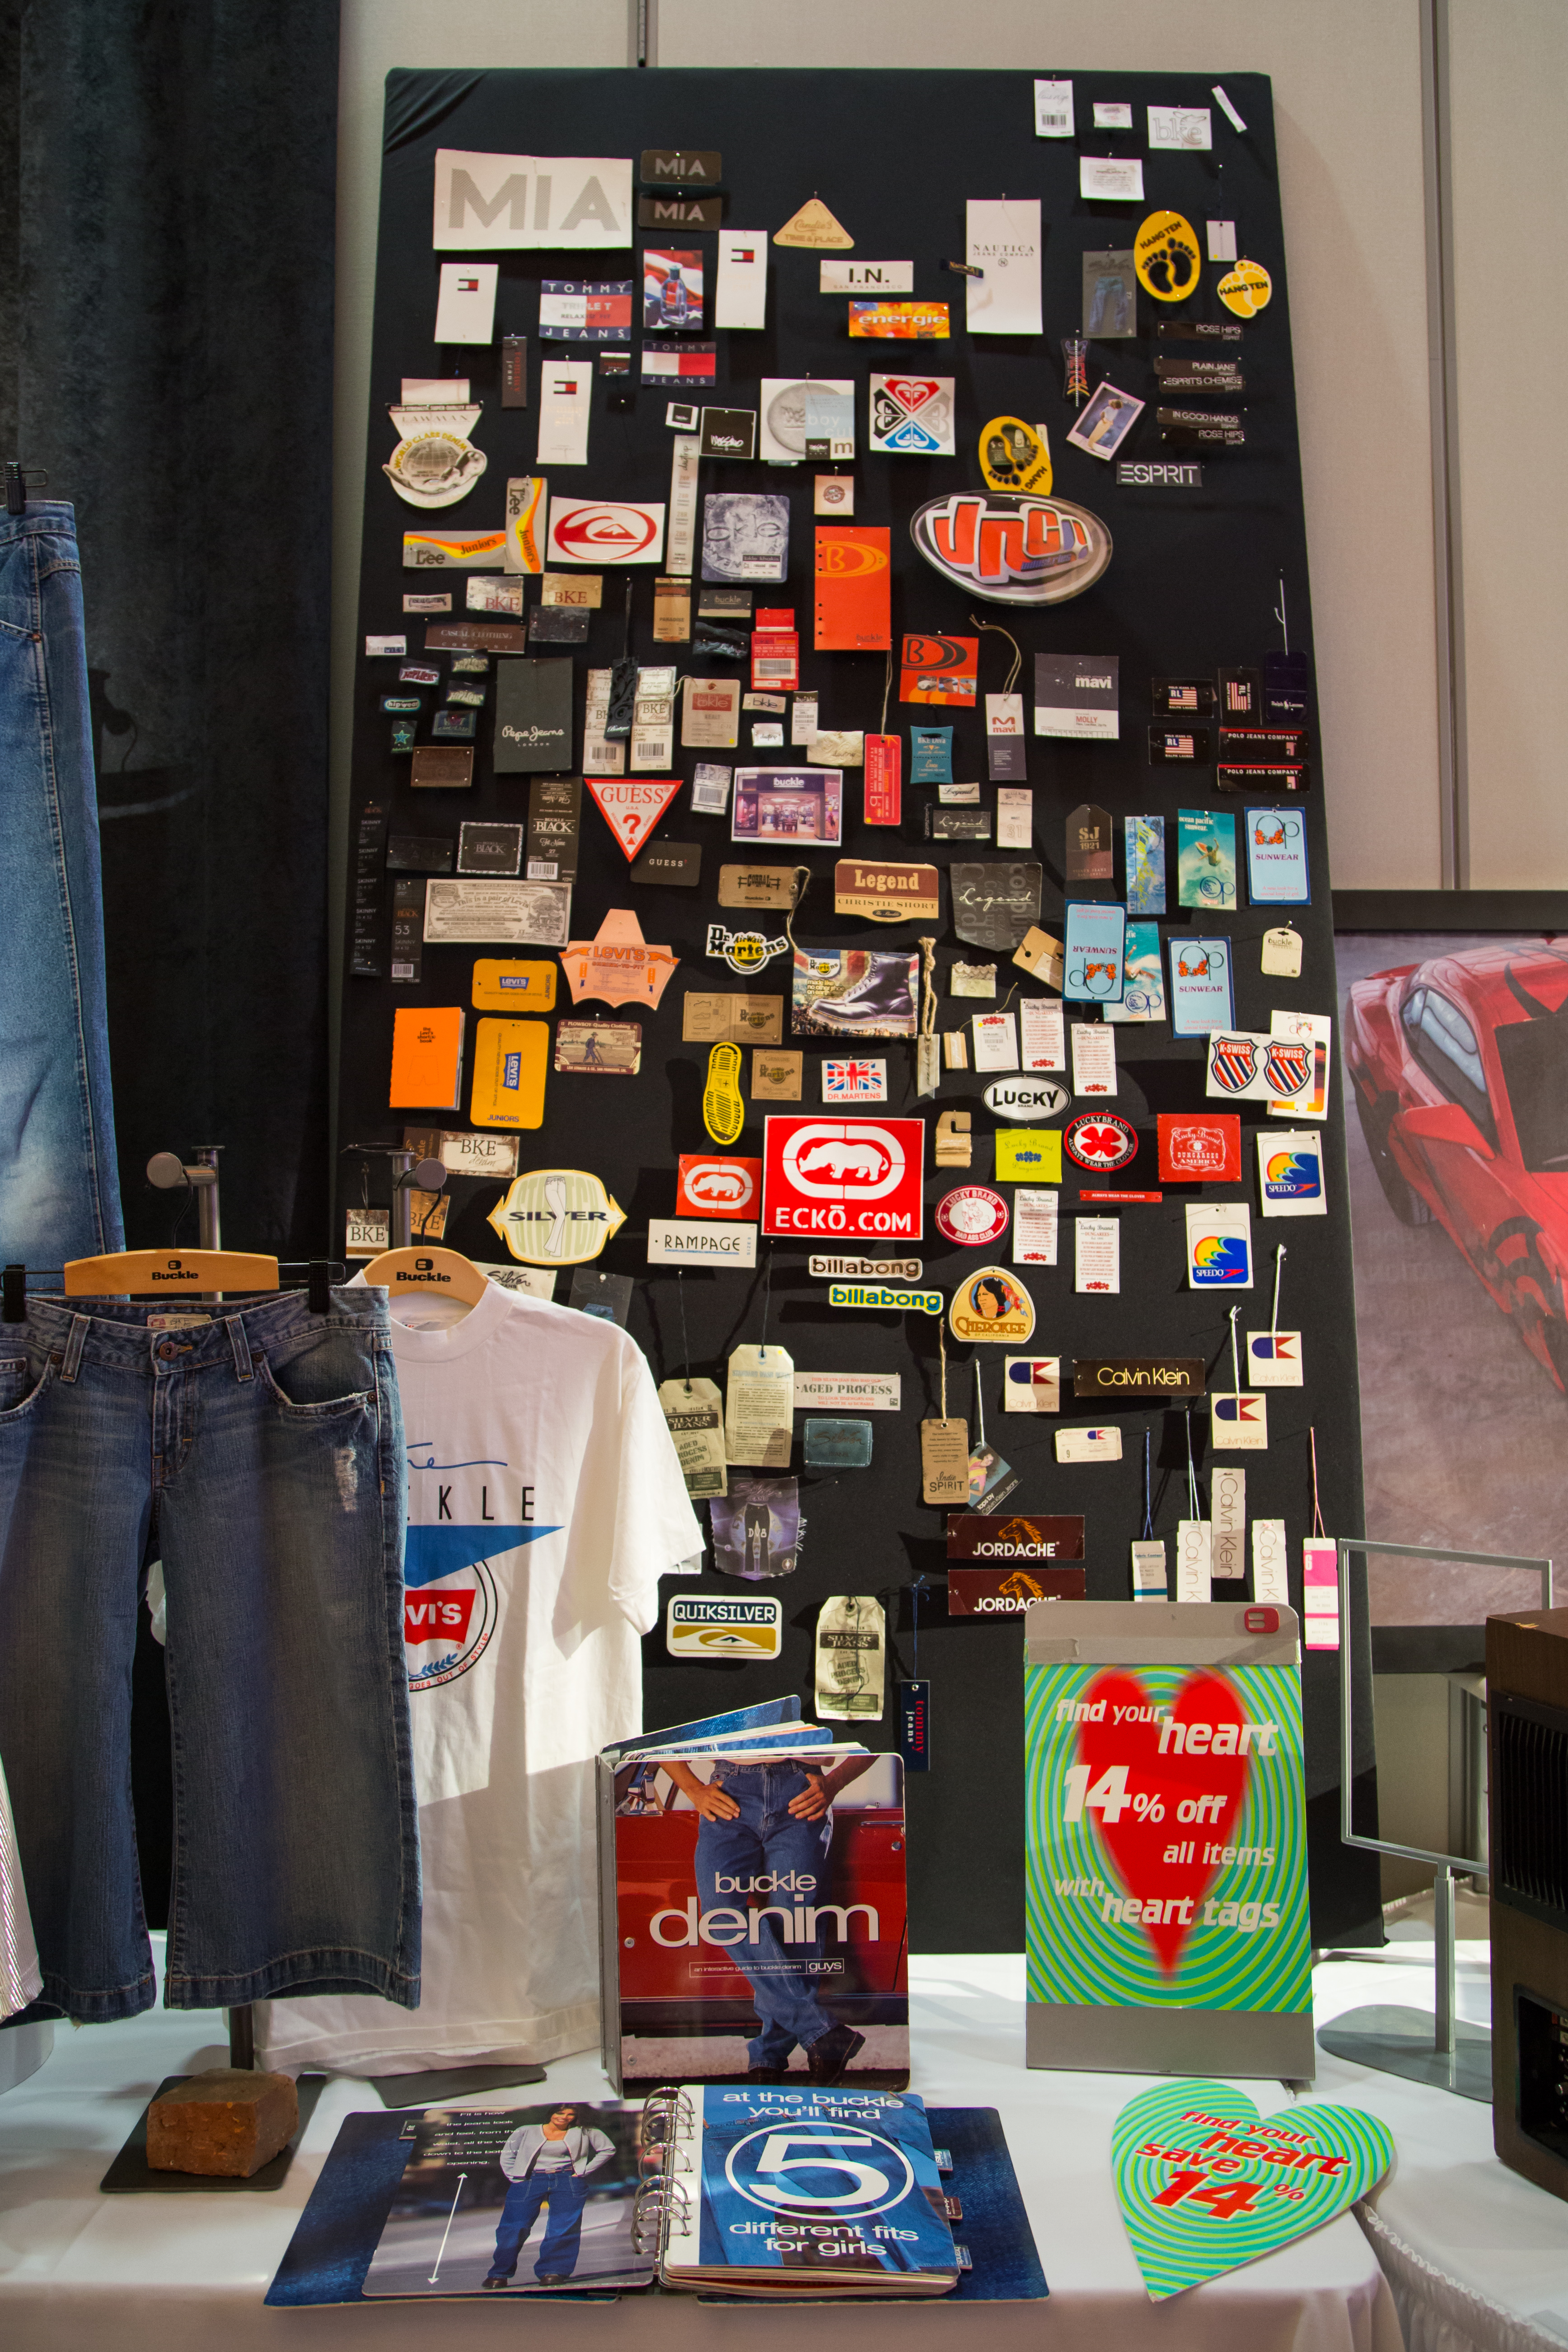 Vintage brands that Buckle has carried over the years.